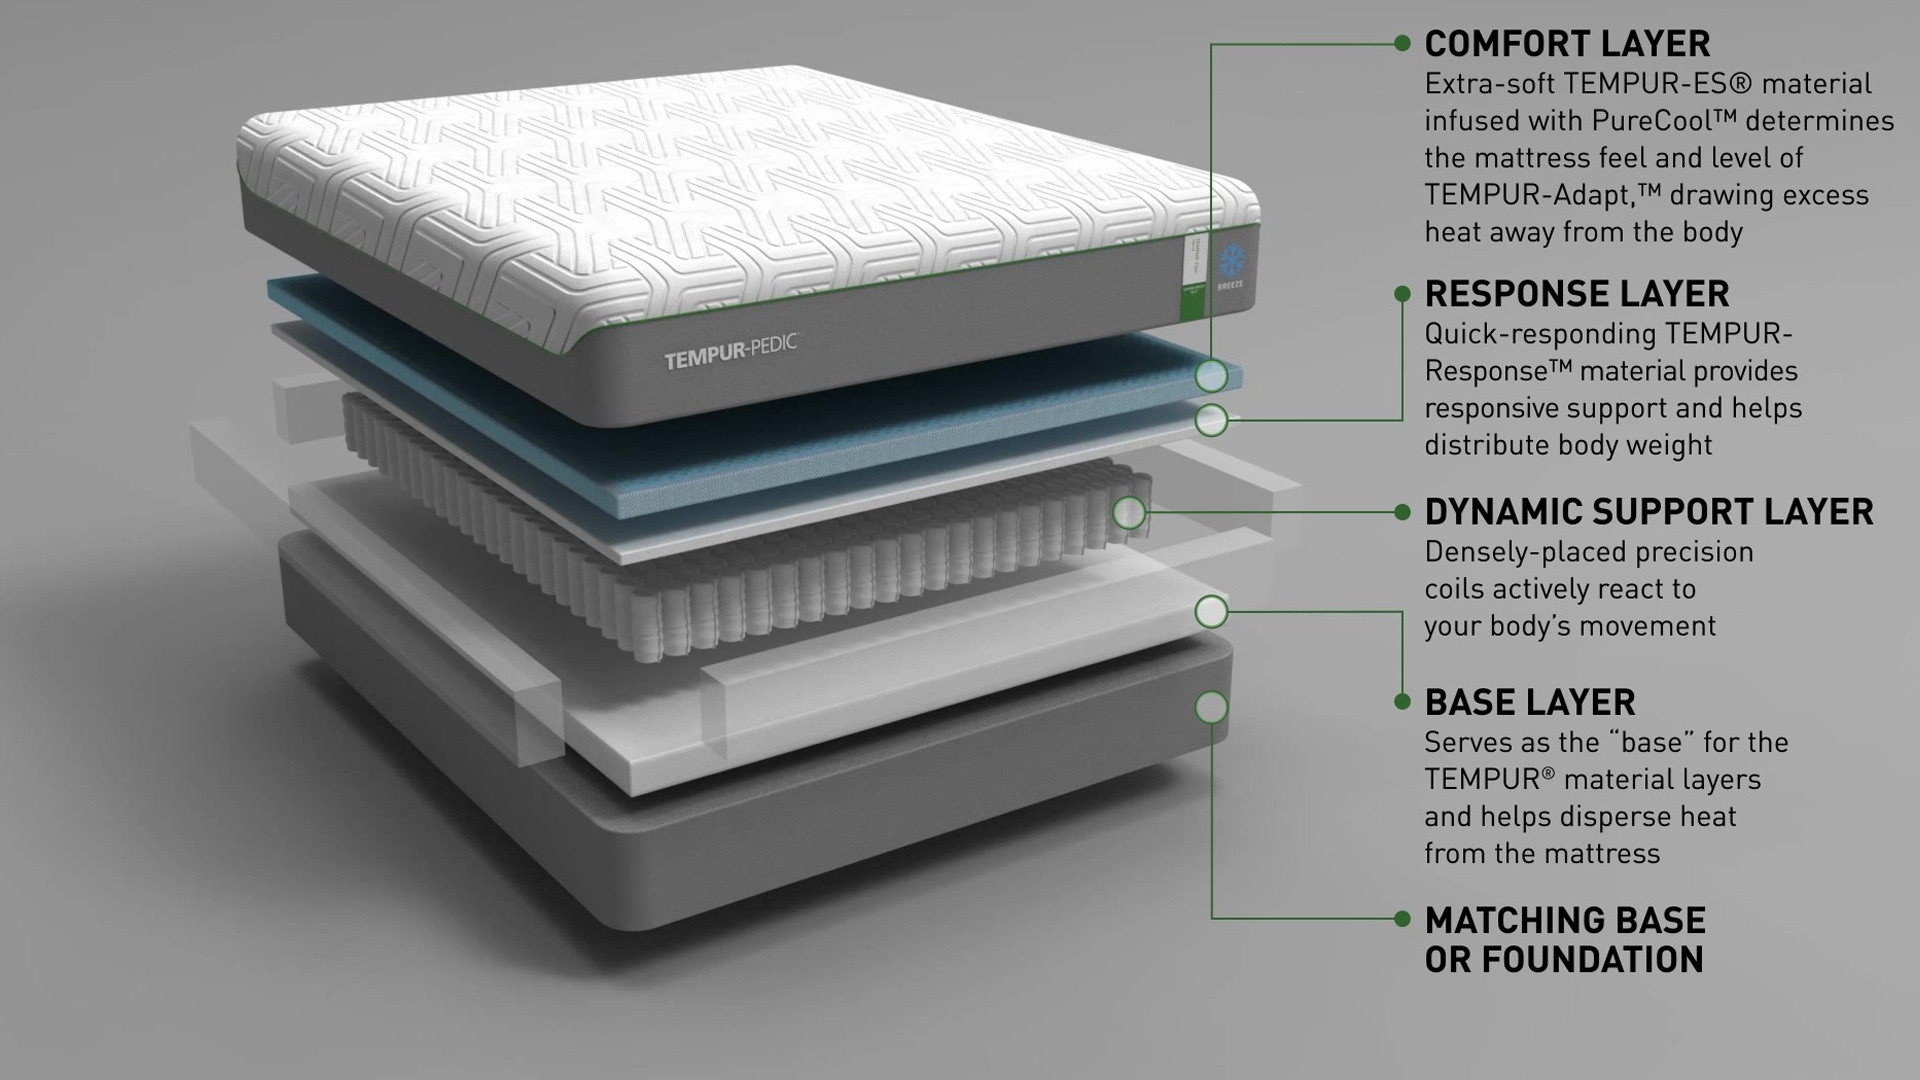 A diagram showing the layers of a TEMPUR-Flex Supreme Breeze mattress